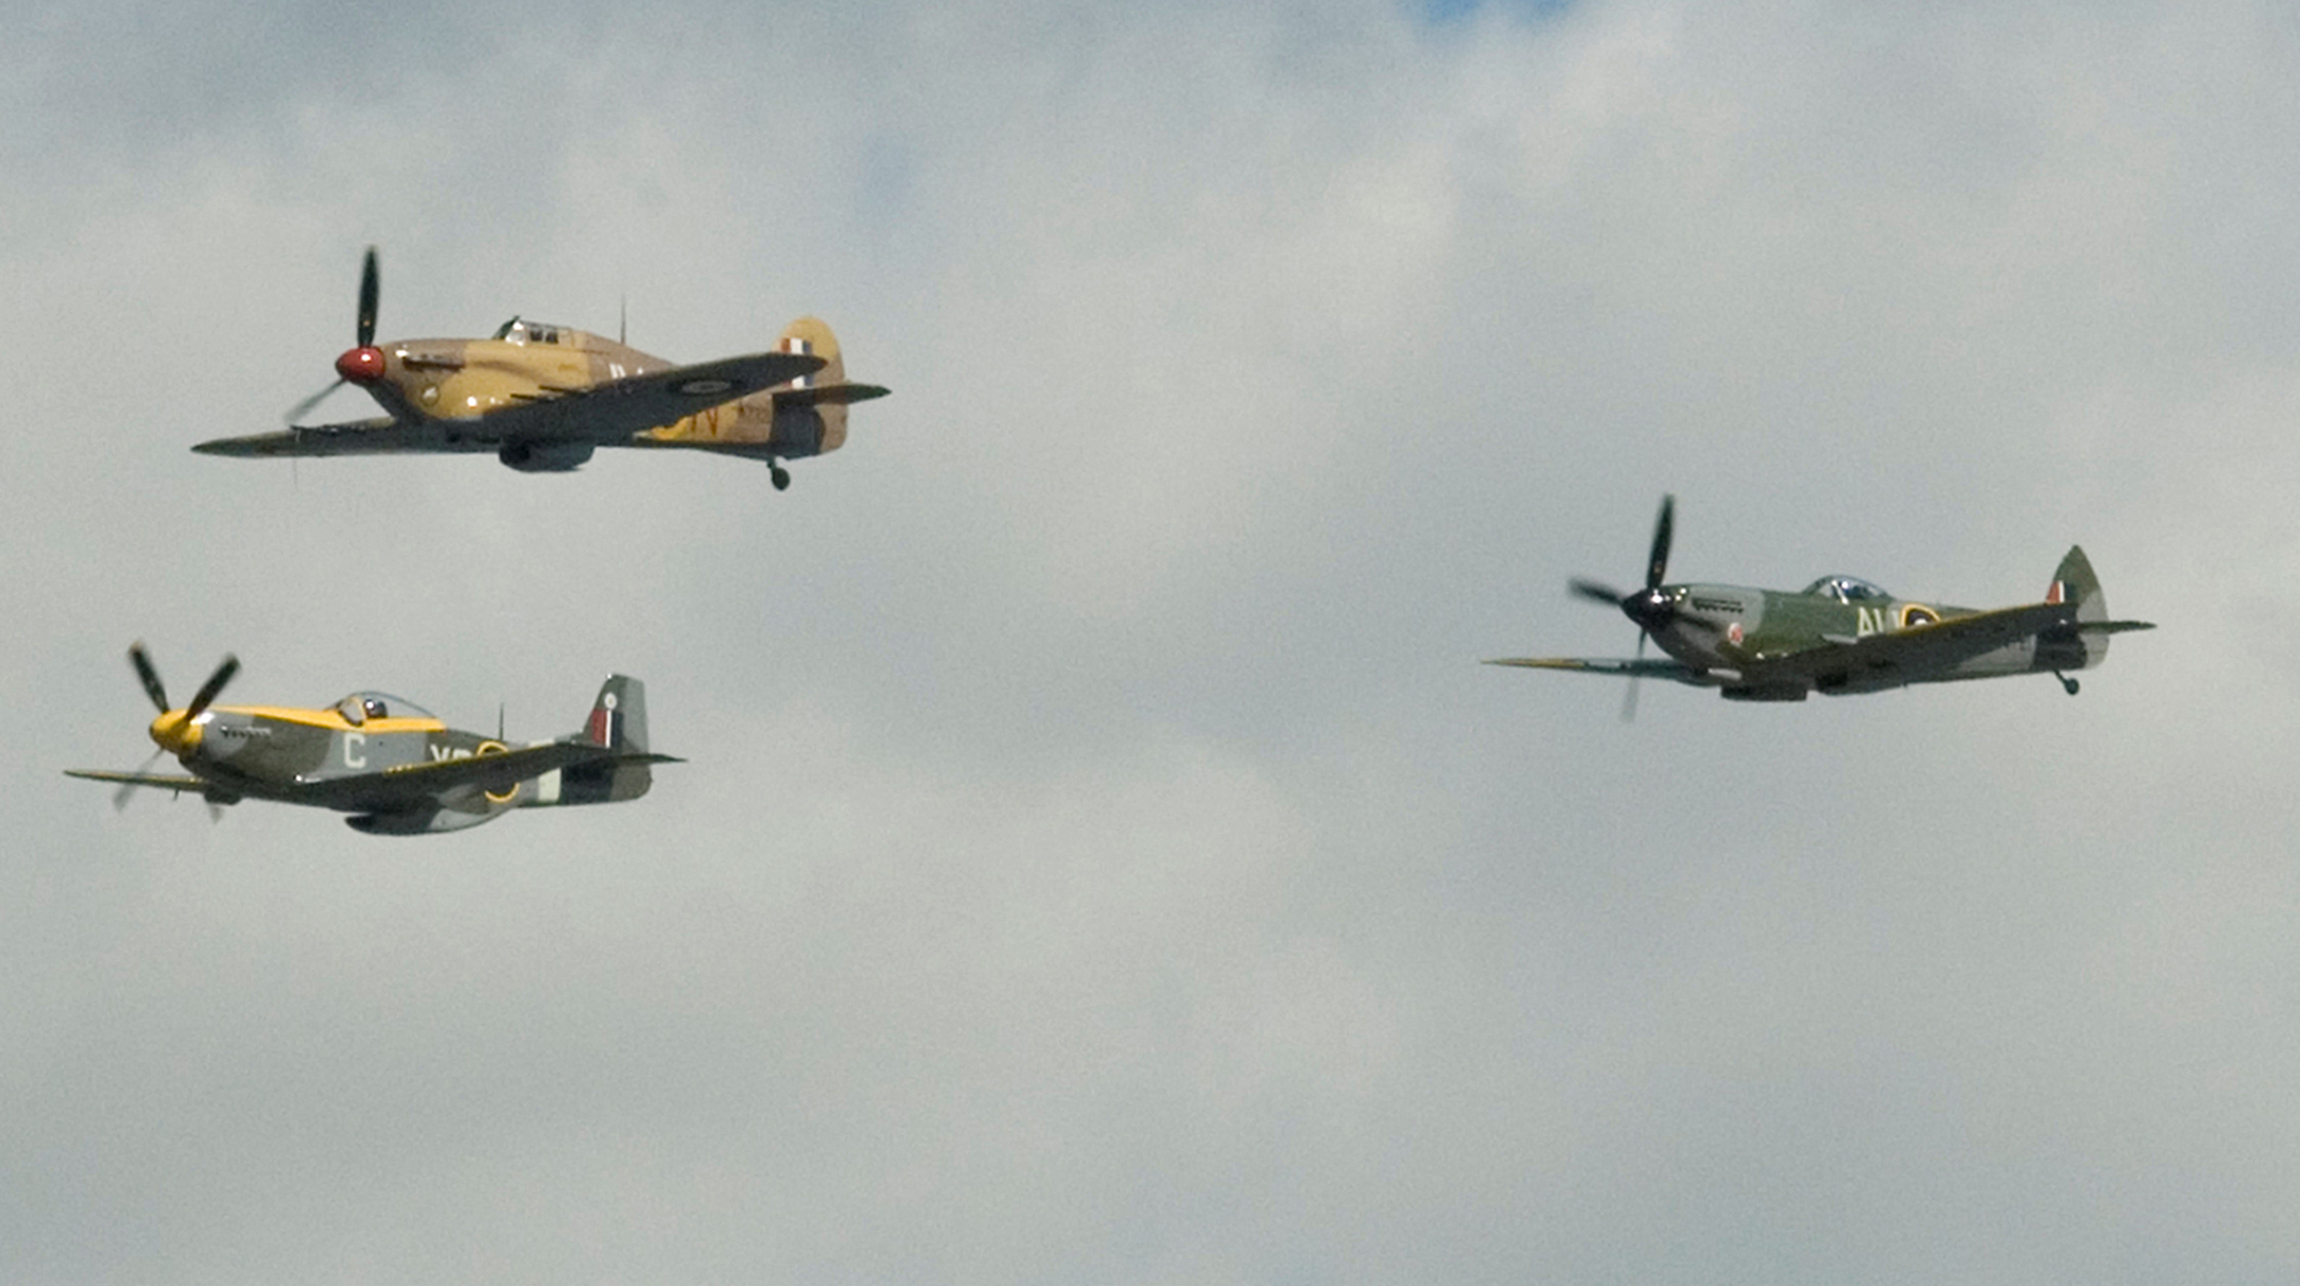 Although they flew somewhat different versions of these iconic aircraft, Canadians operated Mustang (left), Hurricane and Spitfire (right) aircraft in the skies over Dieppe on August 19, 1942. These aircraft, photographed in 2007, belong to Vintage Wings of Canada.  PHOTO: Cory Hunter, IS2007-9214